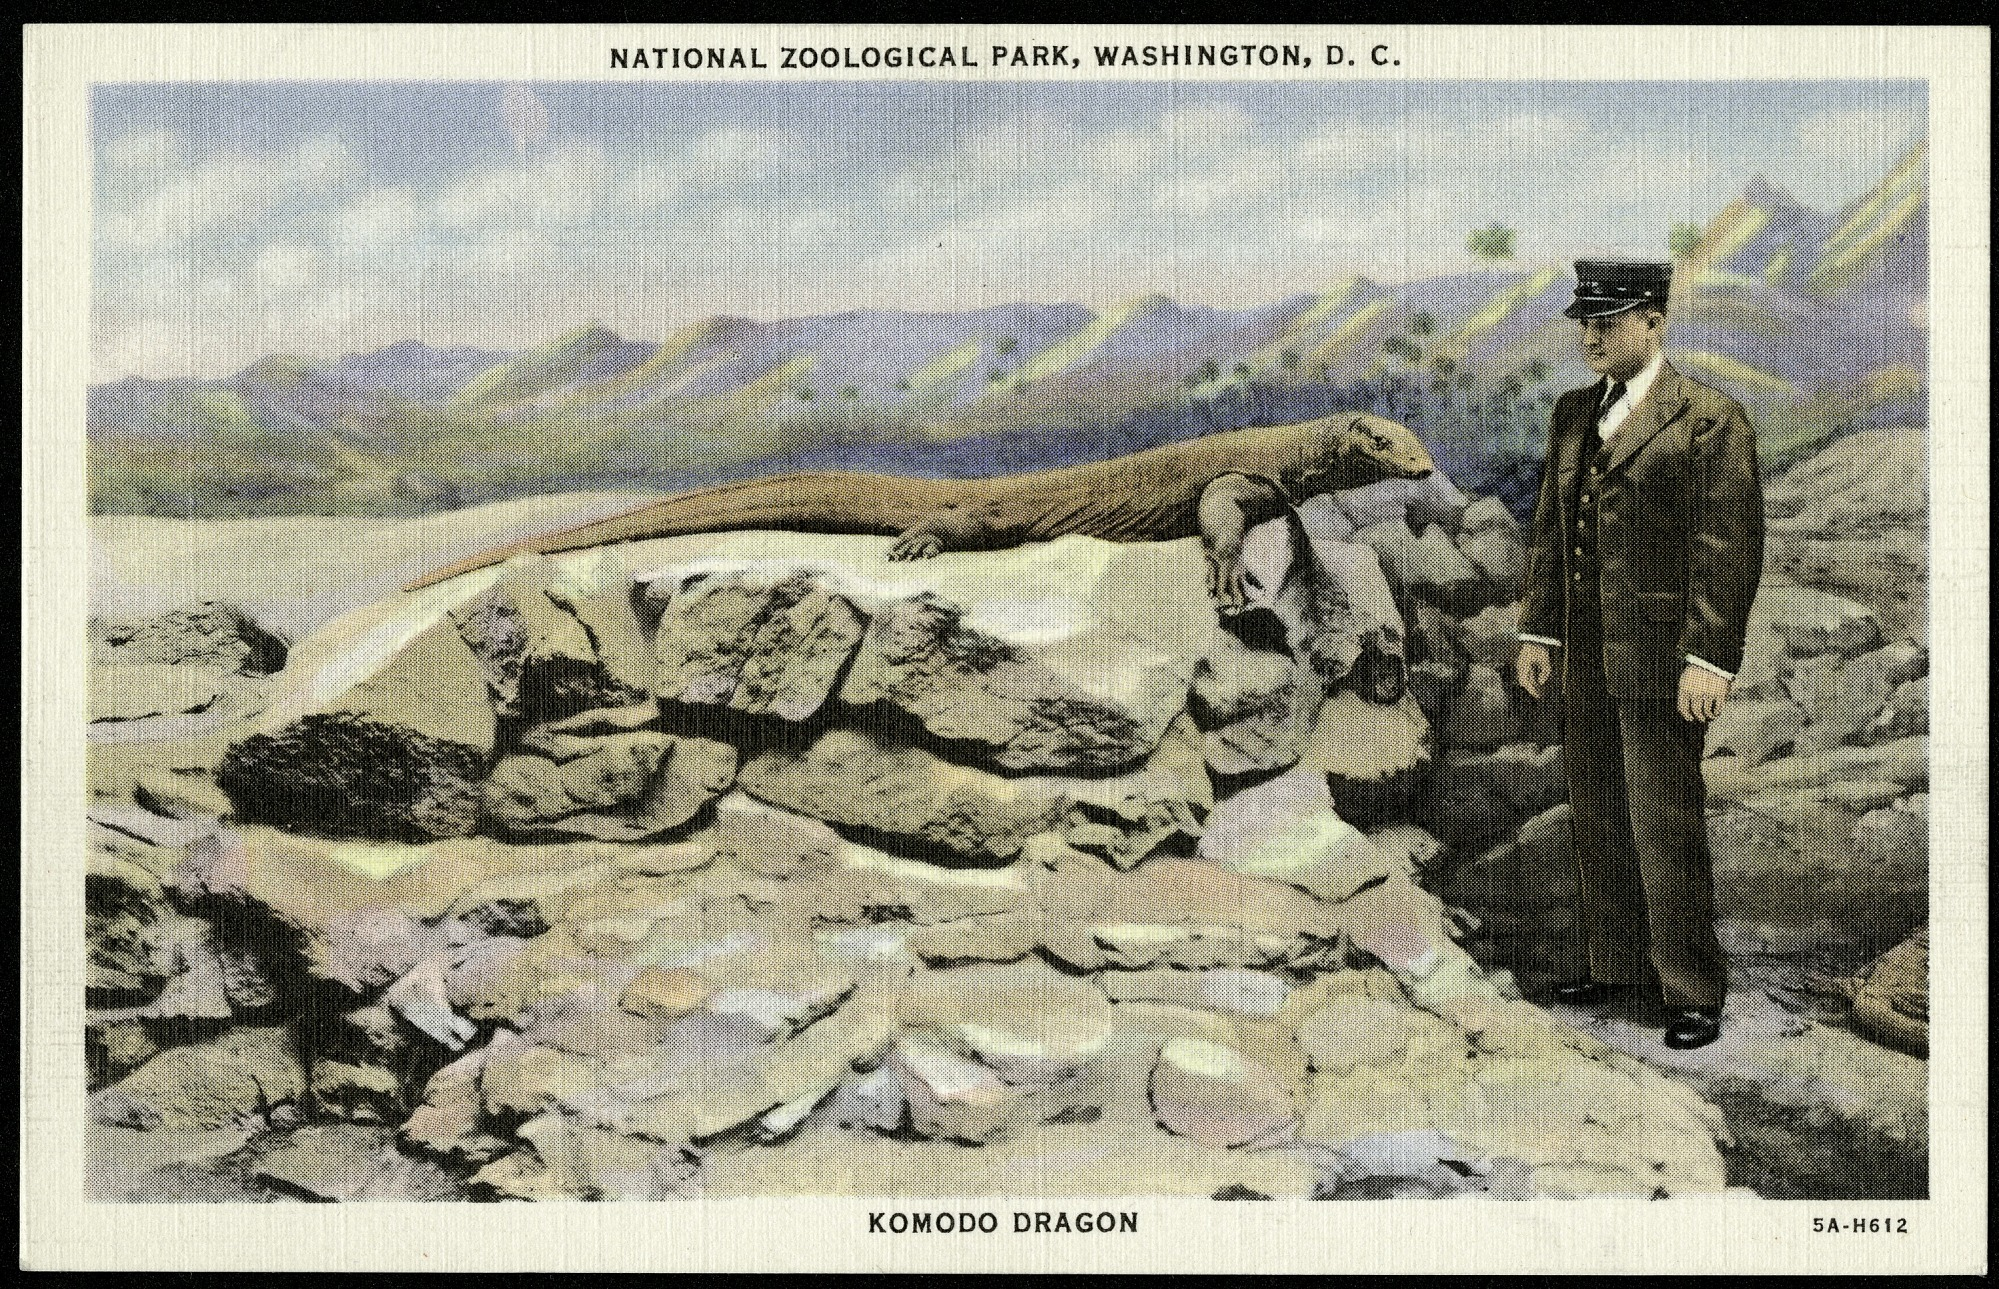 Postcard of a Komodo Dragon